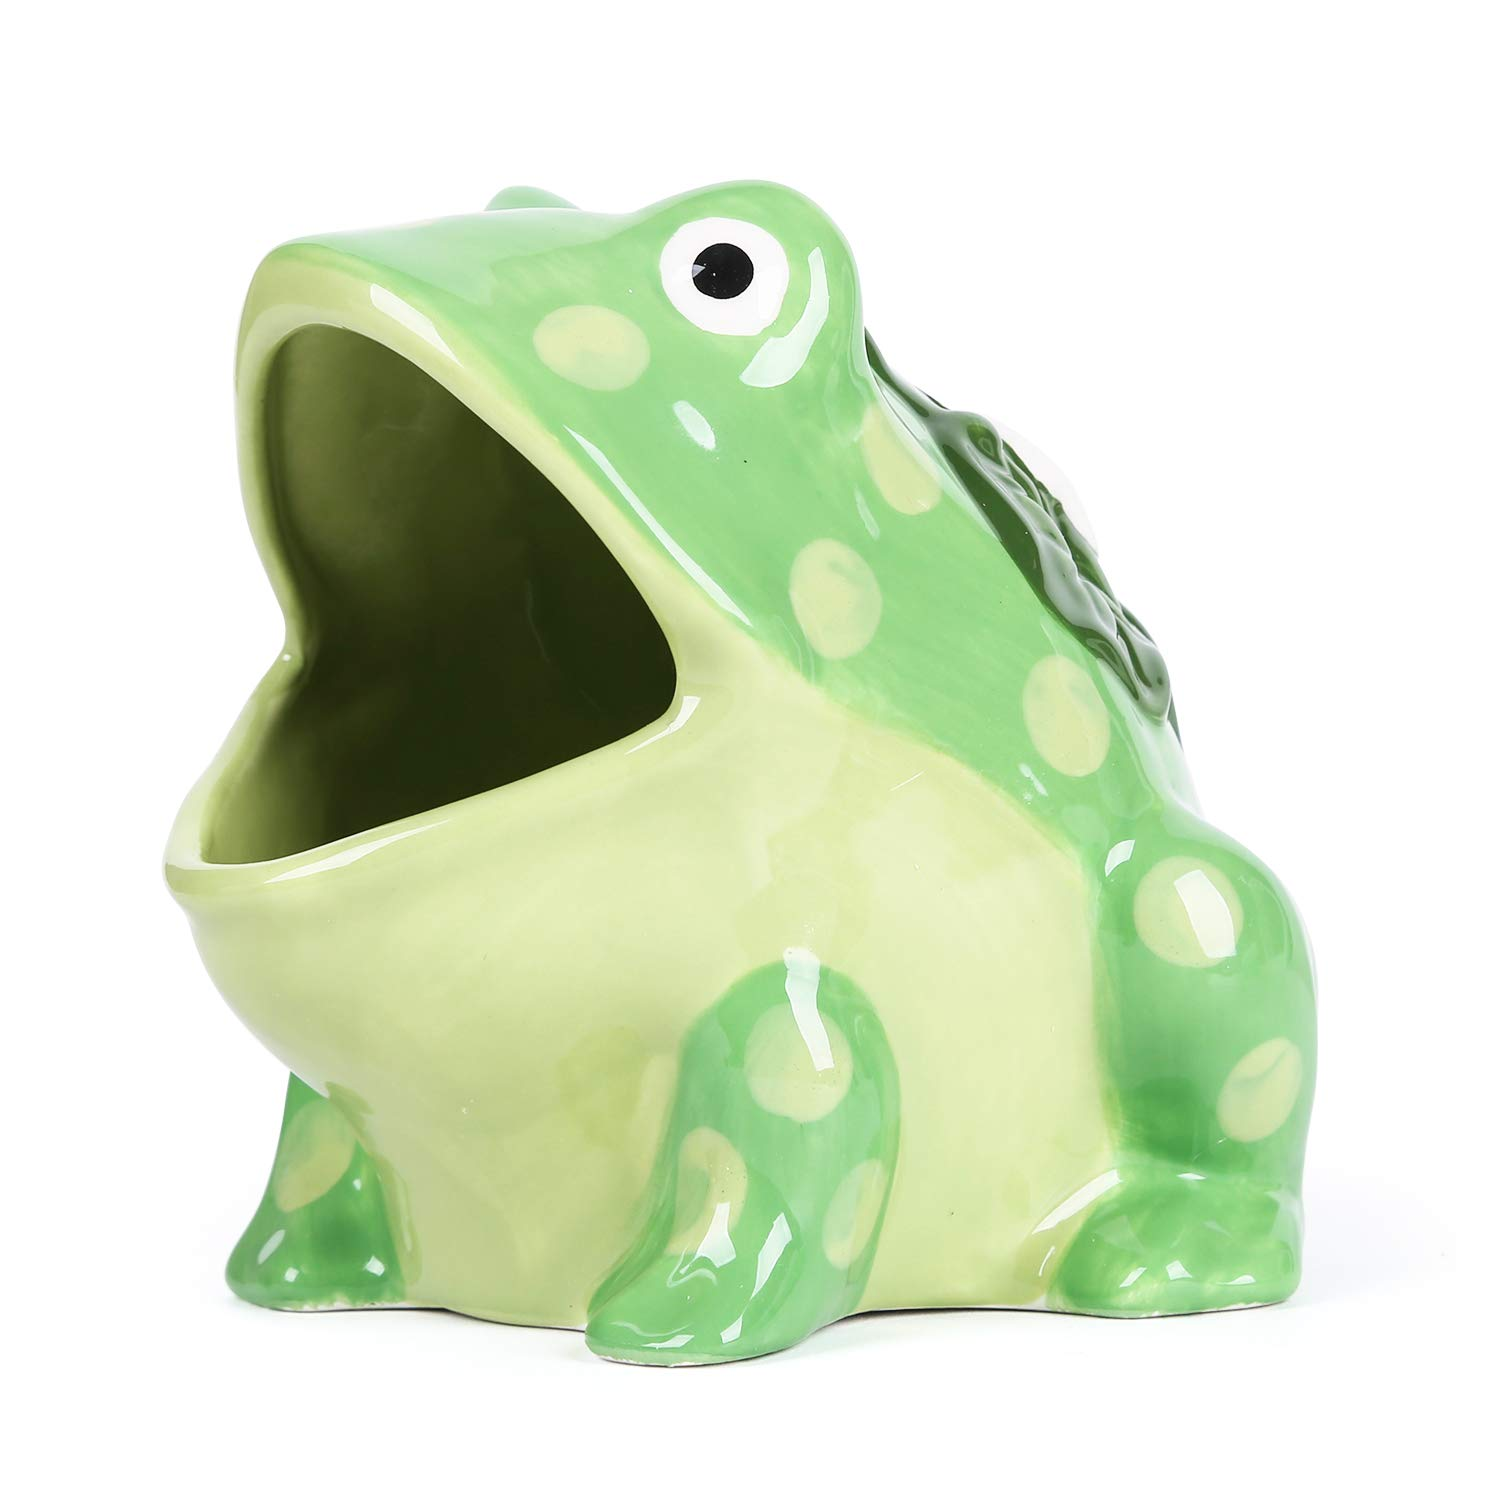 Hand Painted Ceramic Boston Warehouse 75483 Frog Scrubby Holder with Non-scratch Dish Scrubber